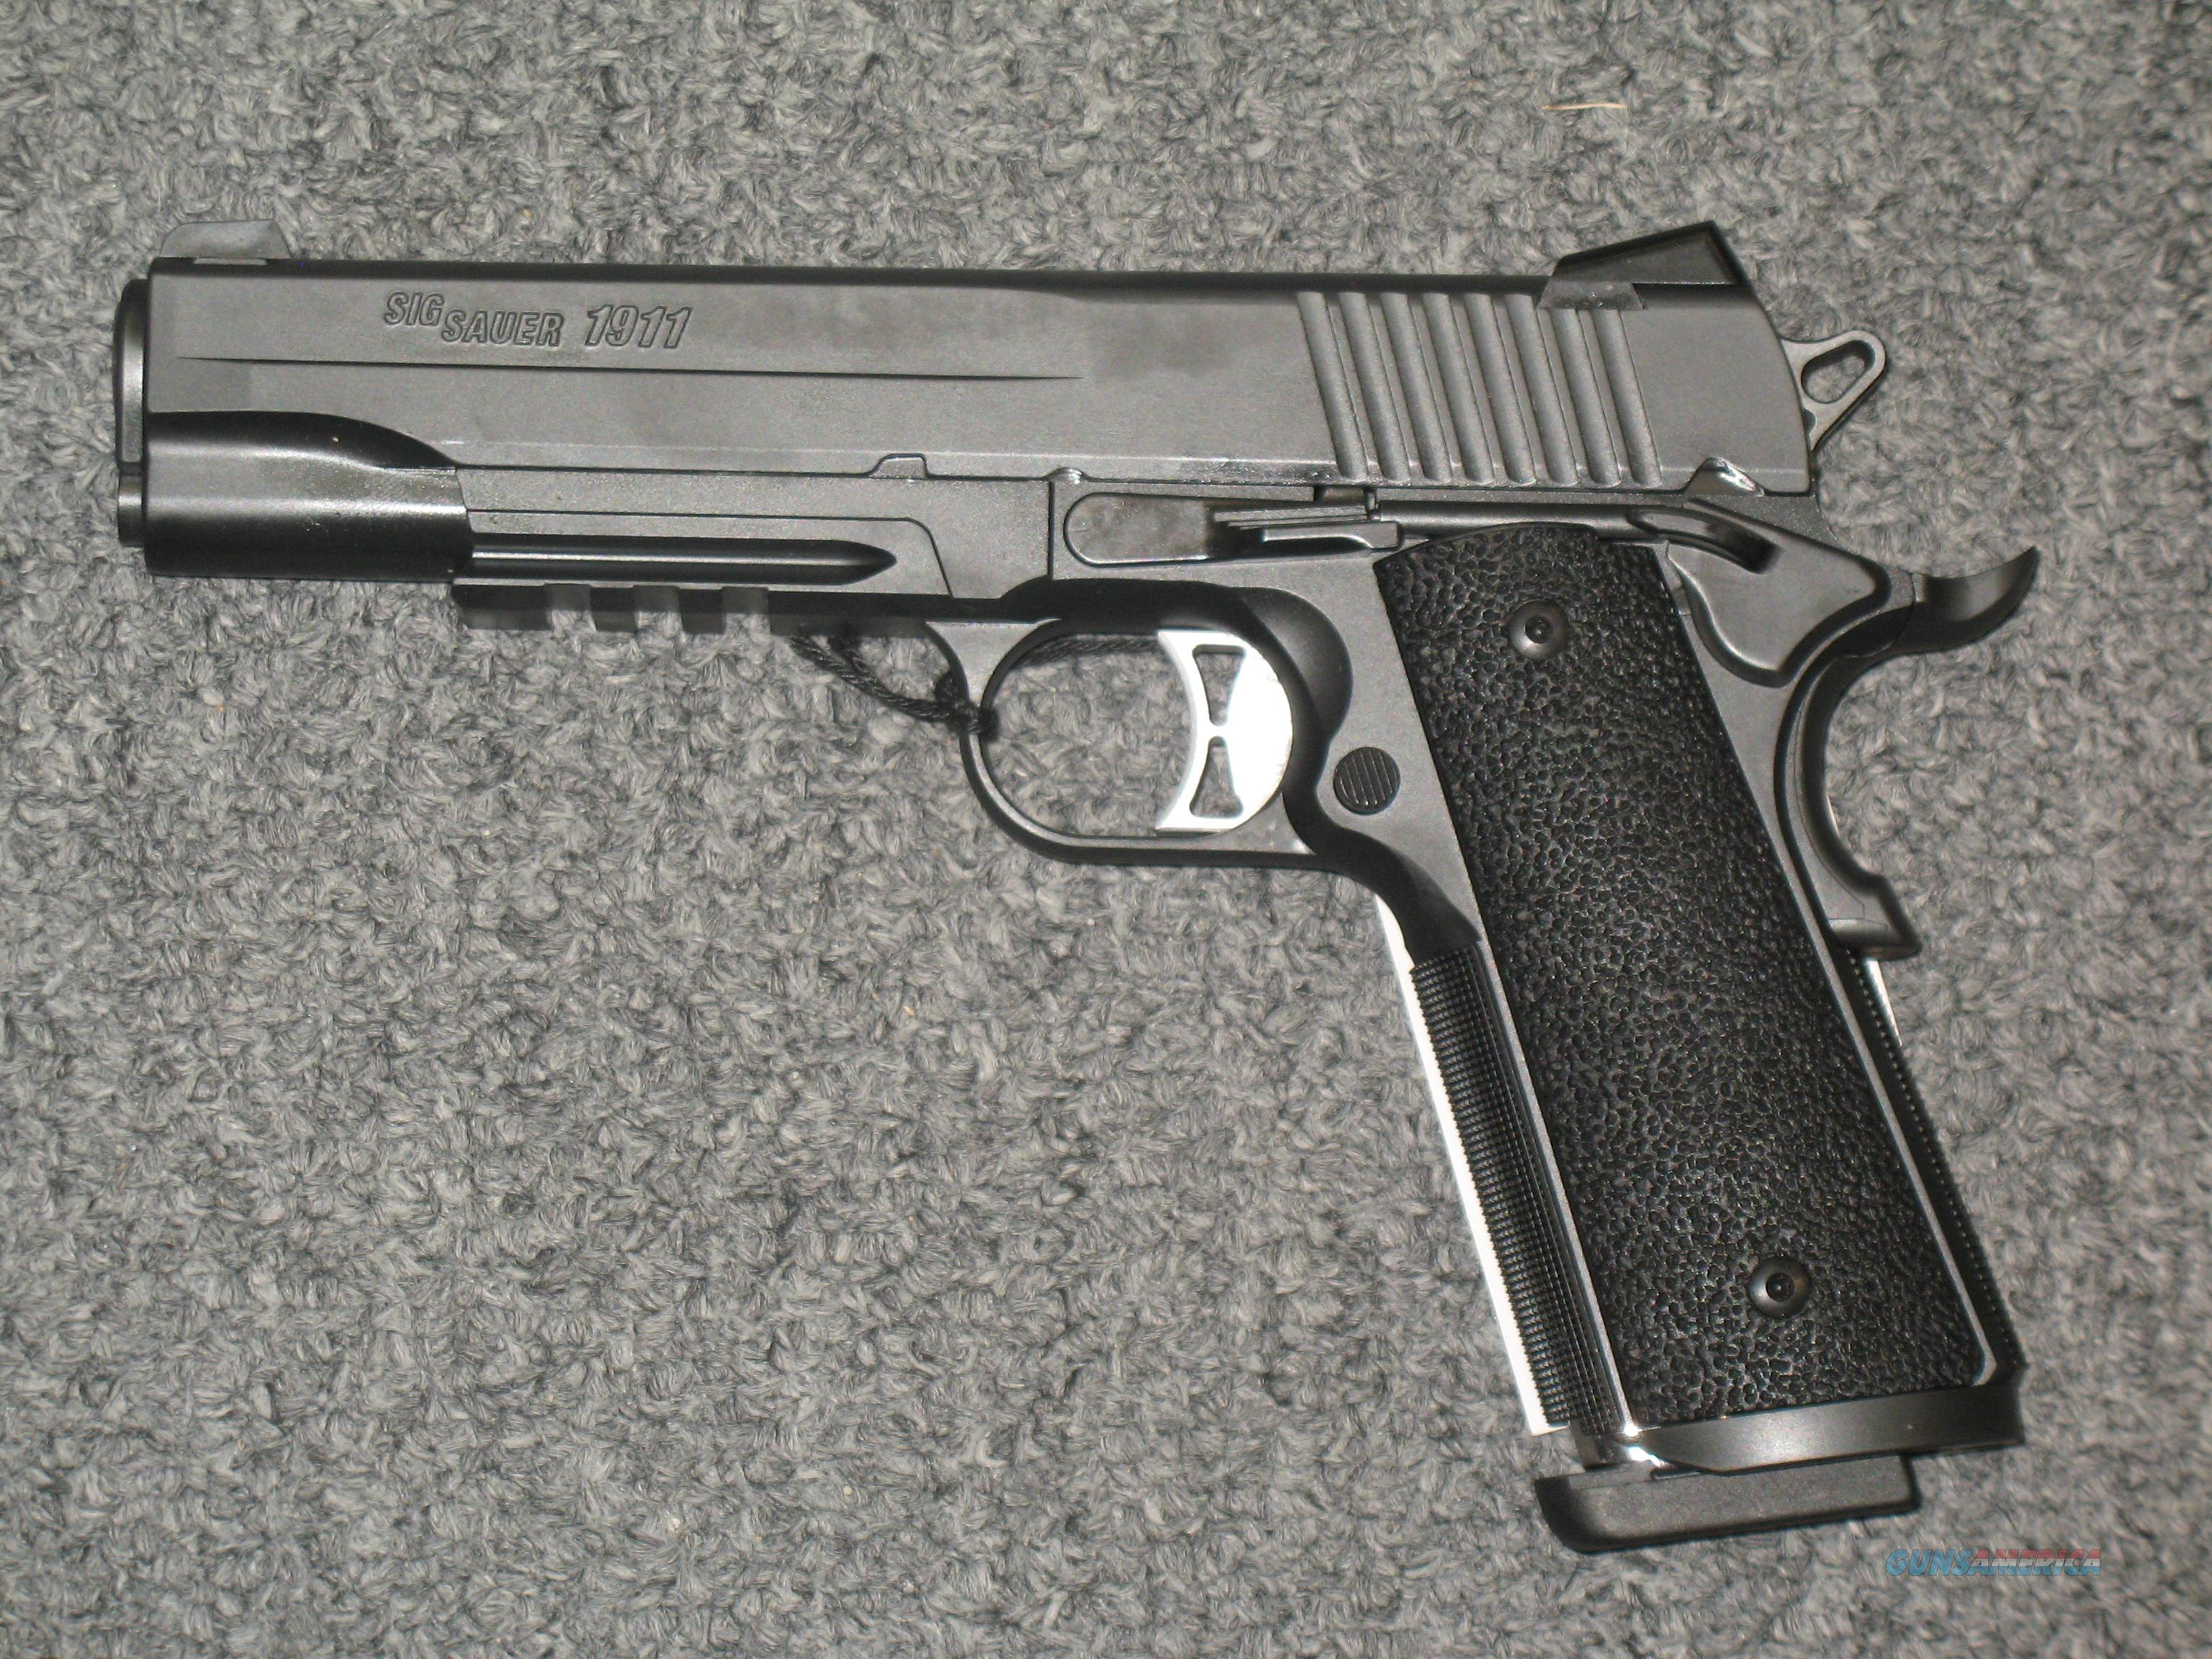 1911 TACOPS  w/4 mags. (1911-10-TACOPS) .10mm Night Sights  Guns > Pistols > Sig - Sauer/Sigarms Pistols > 1911